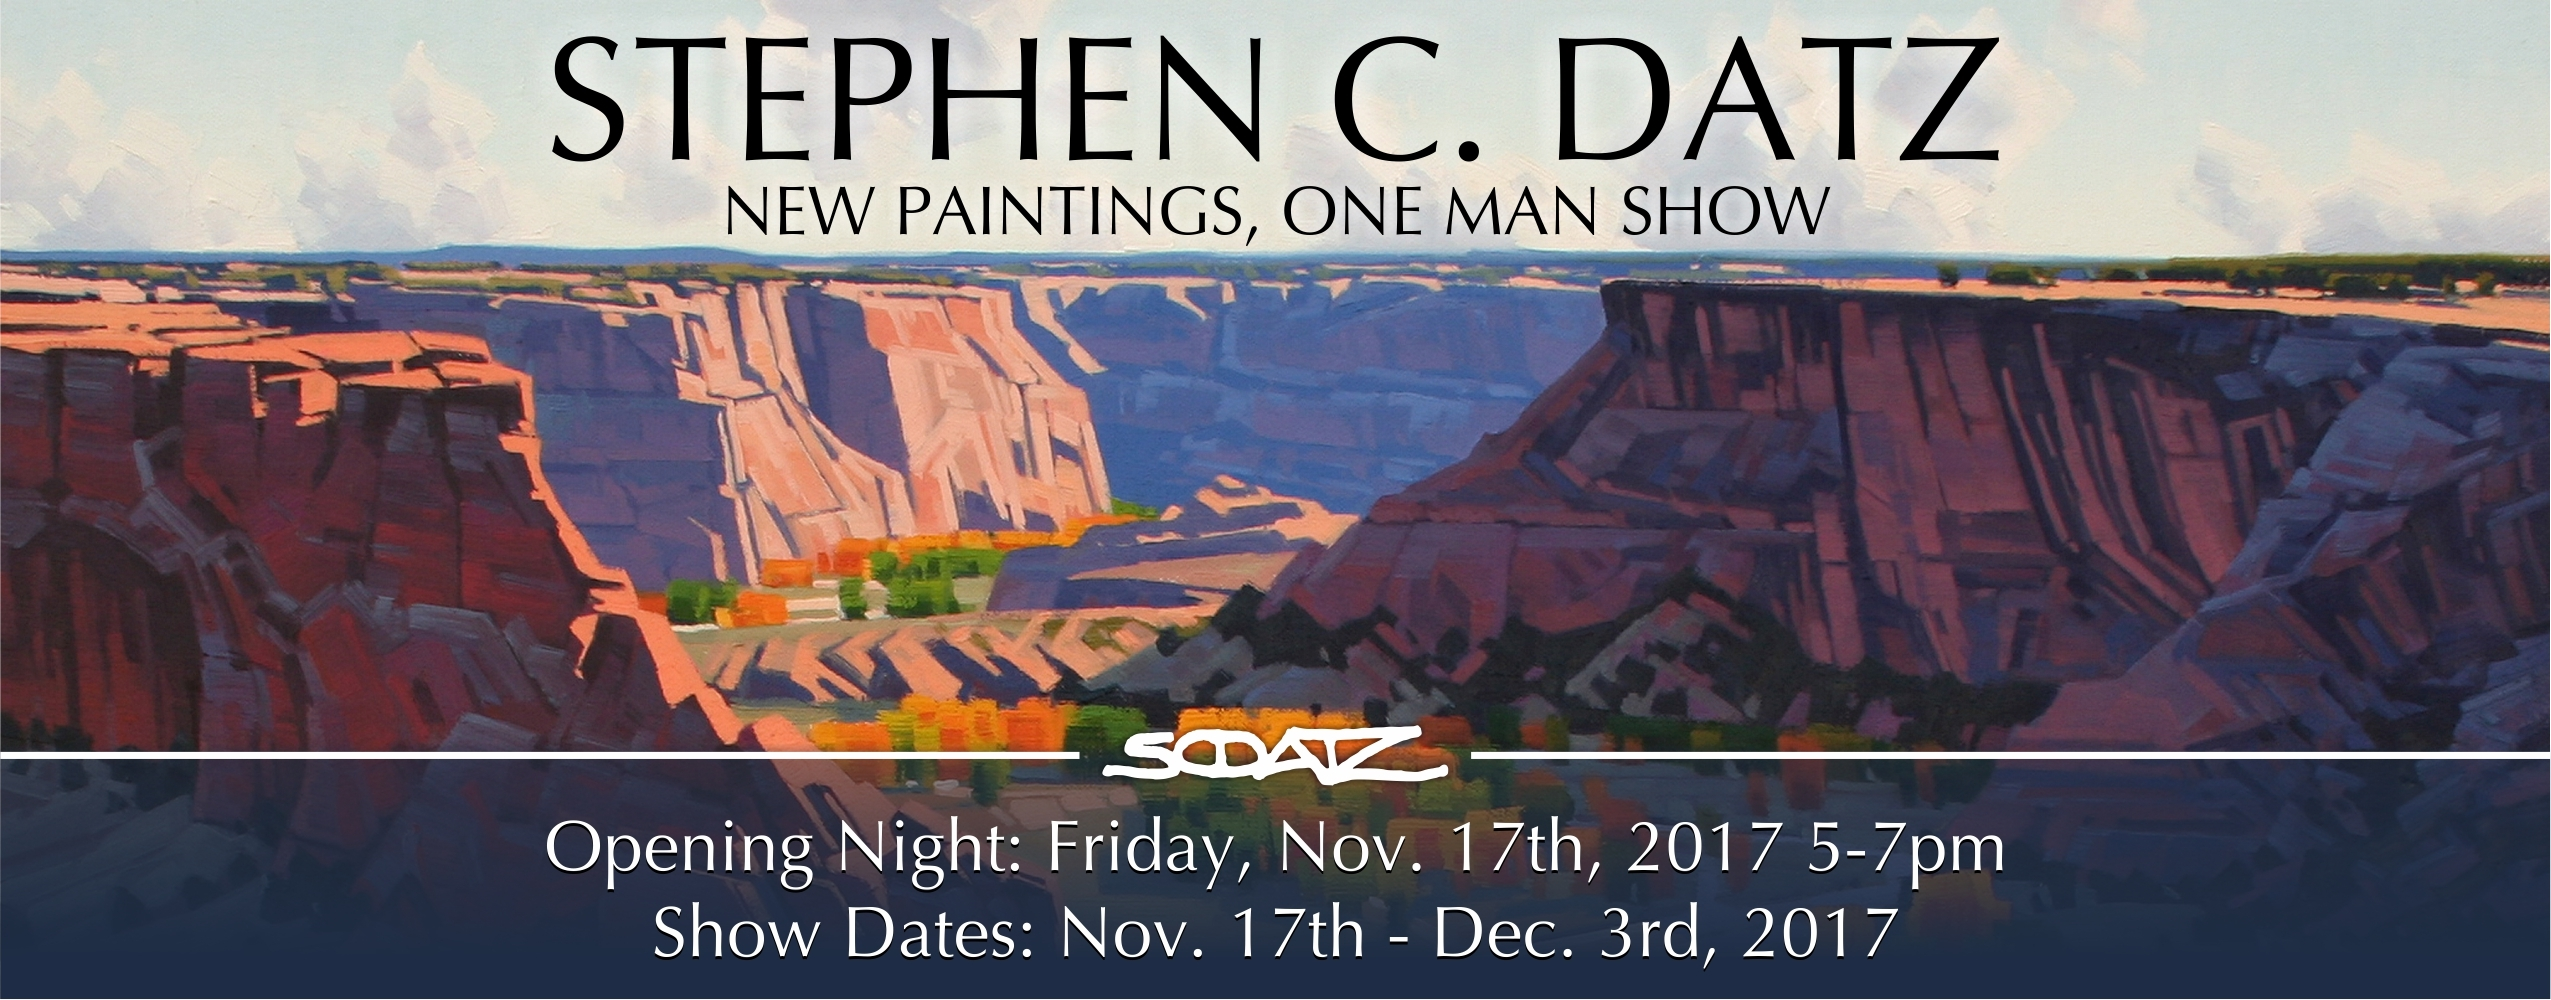 Stephen C Datz New Paintings One Man Show